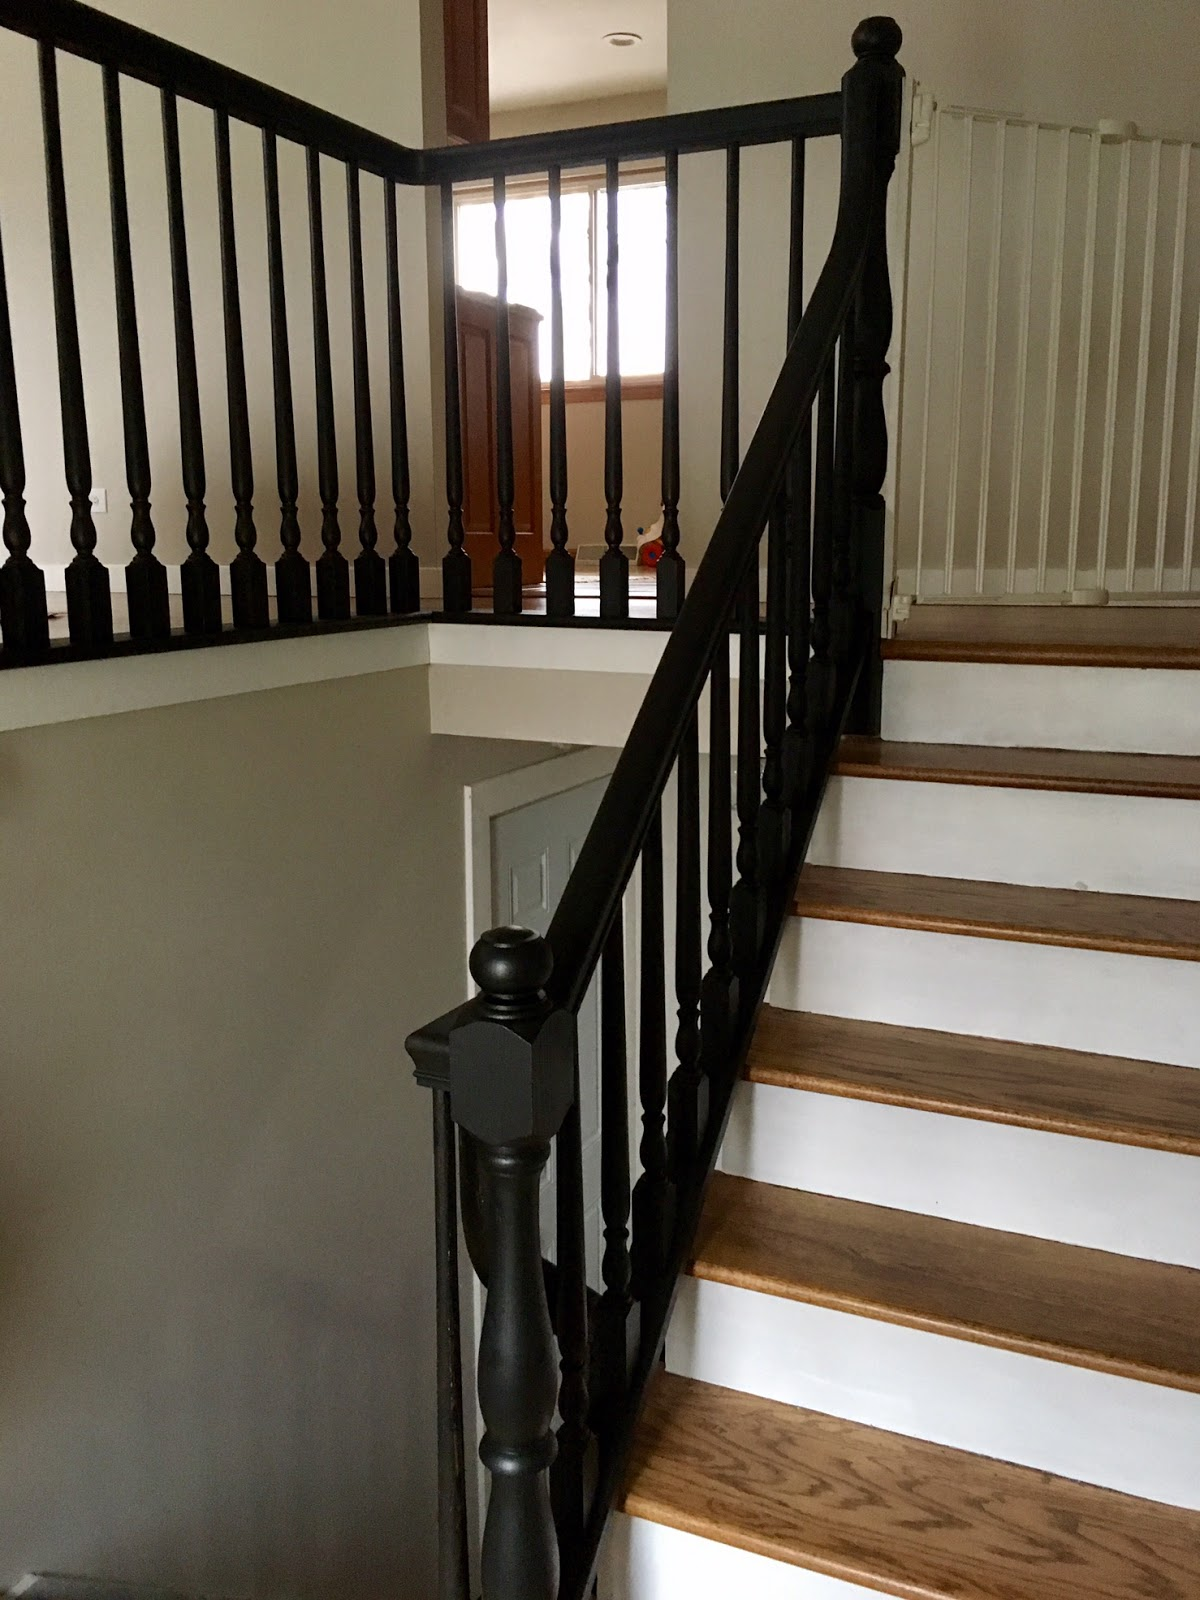 Russet Street Reno Paint Fixes Everything | Black Banister With White Spindles | Brazilian Cherry Stair | Victorian | Traditional Home | Iron Spindle White Catwalk Brown Railing | Gray